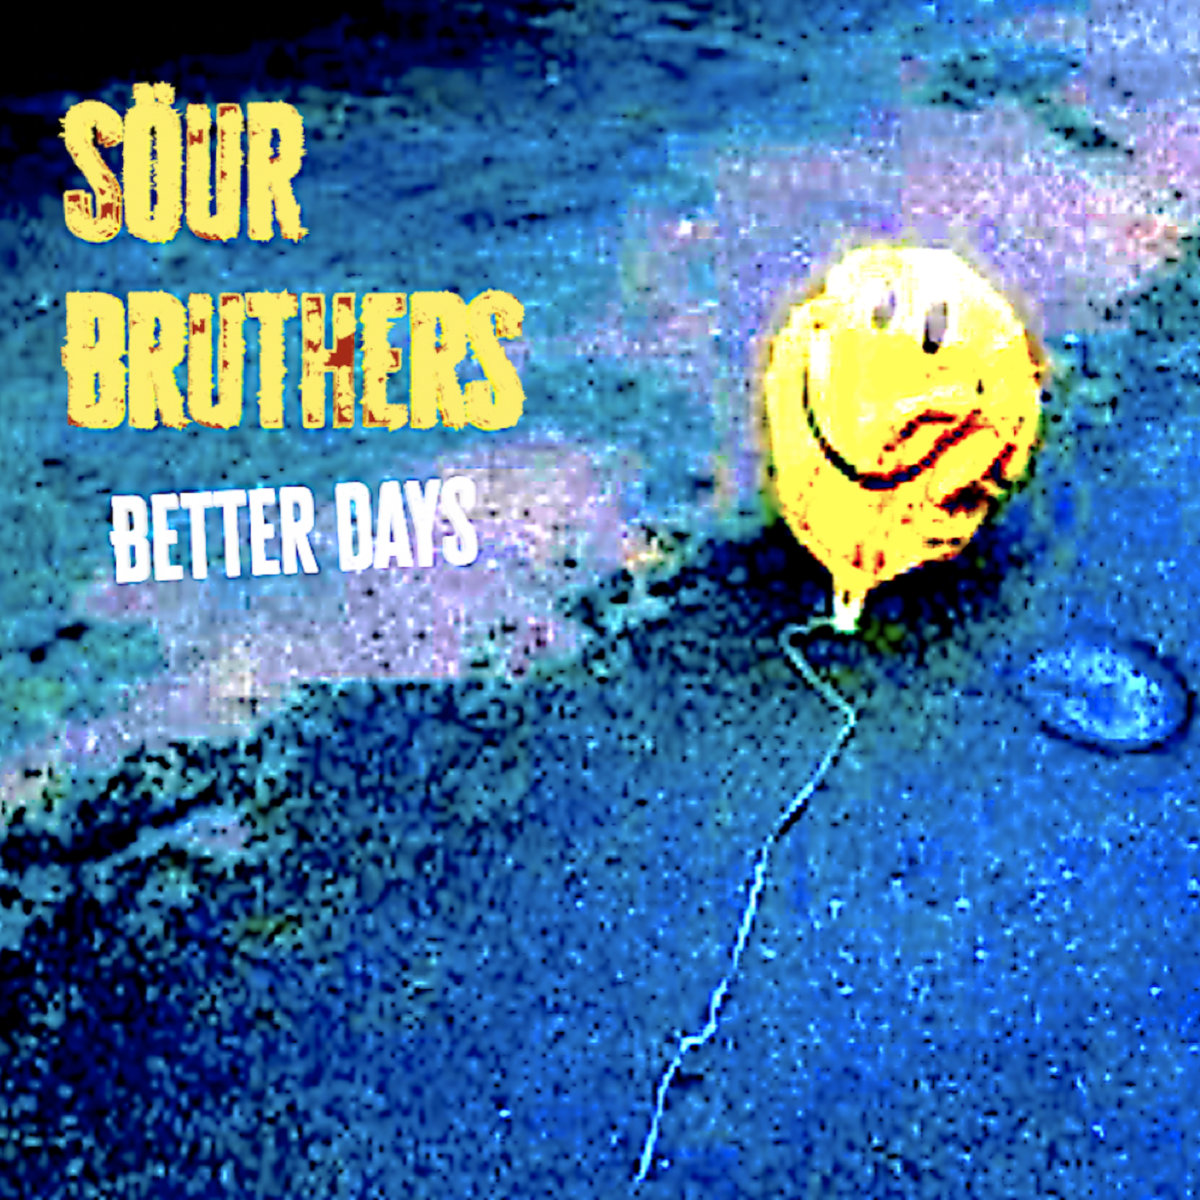 Better Days by Söur Bruthers